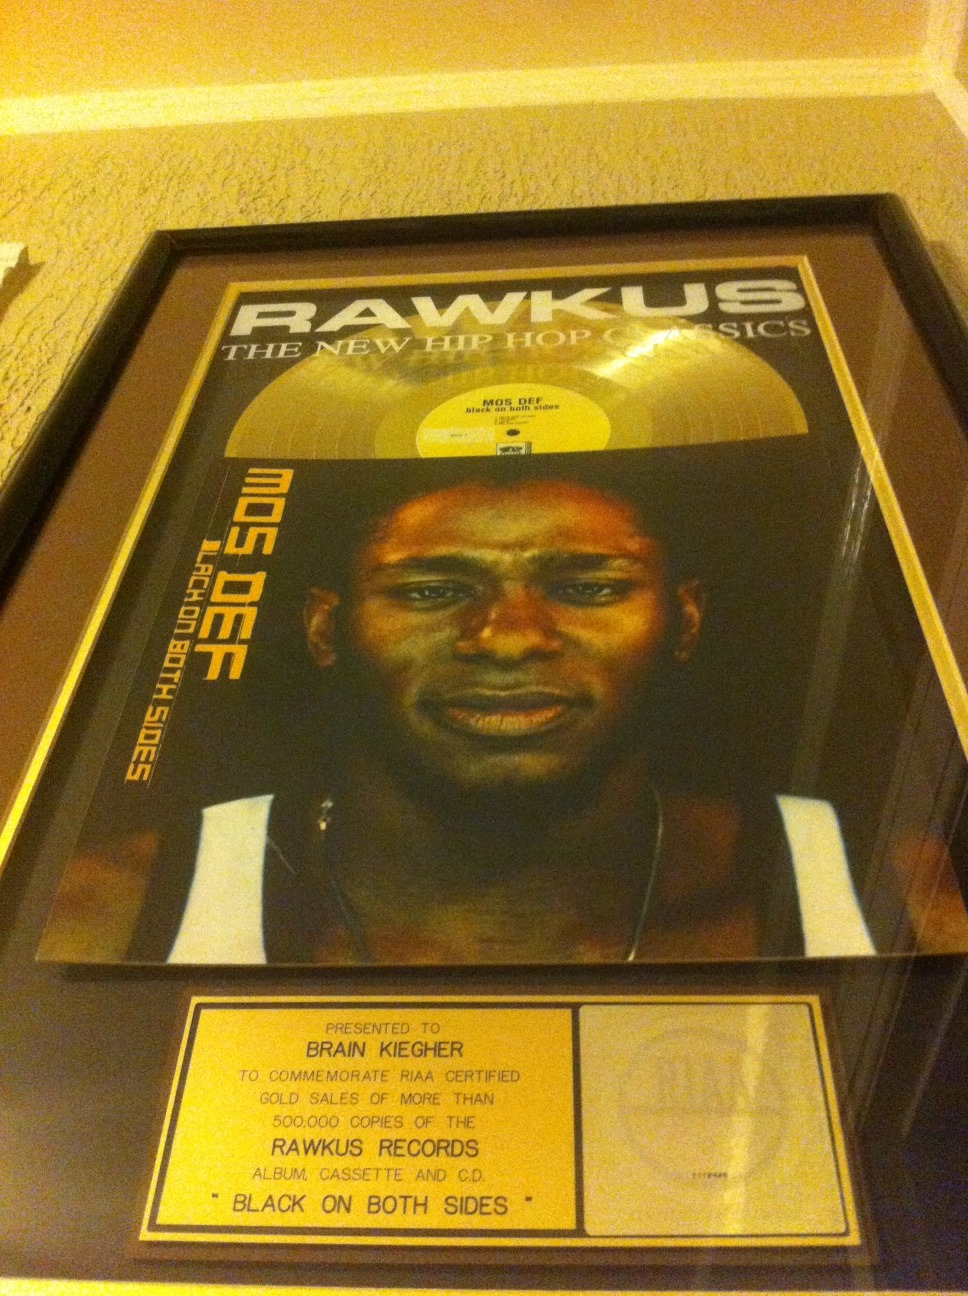 Recording Industry Gold Record from Rawkus Records for working Marketing and Promotions for Mos Def's Black on Both Sides